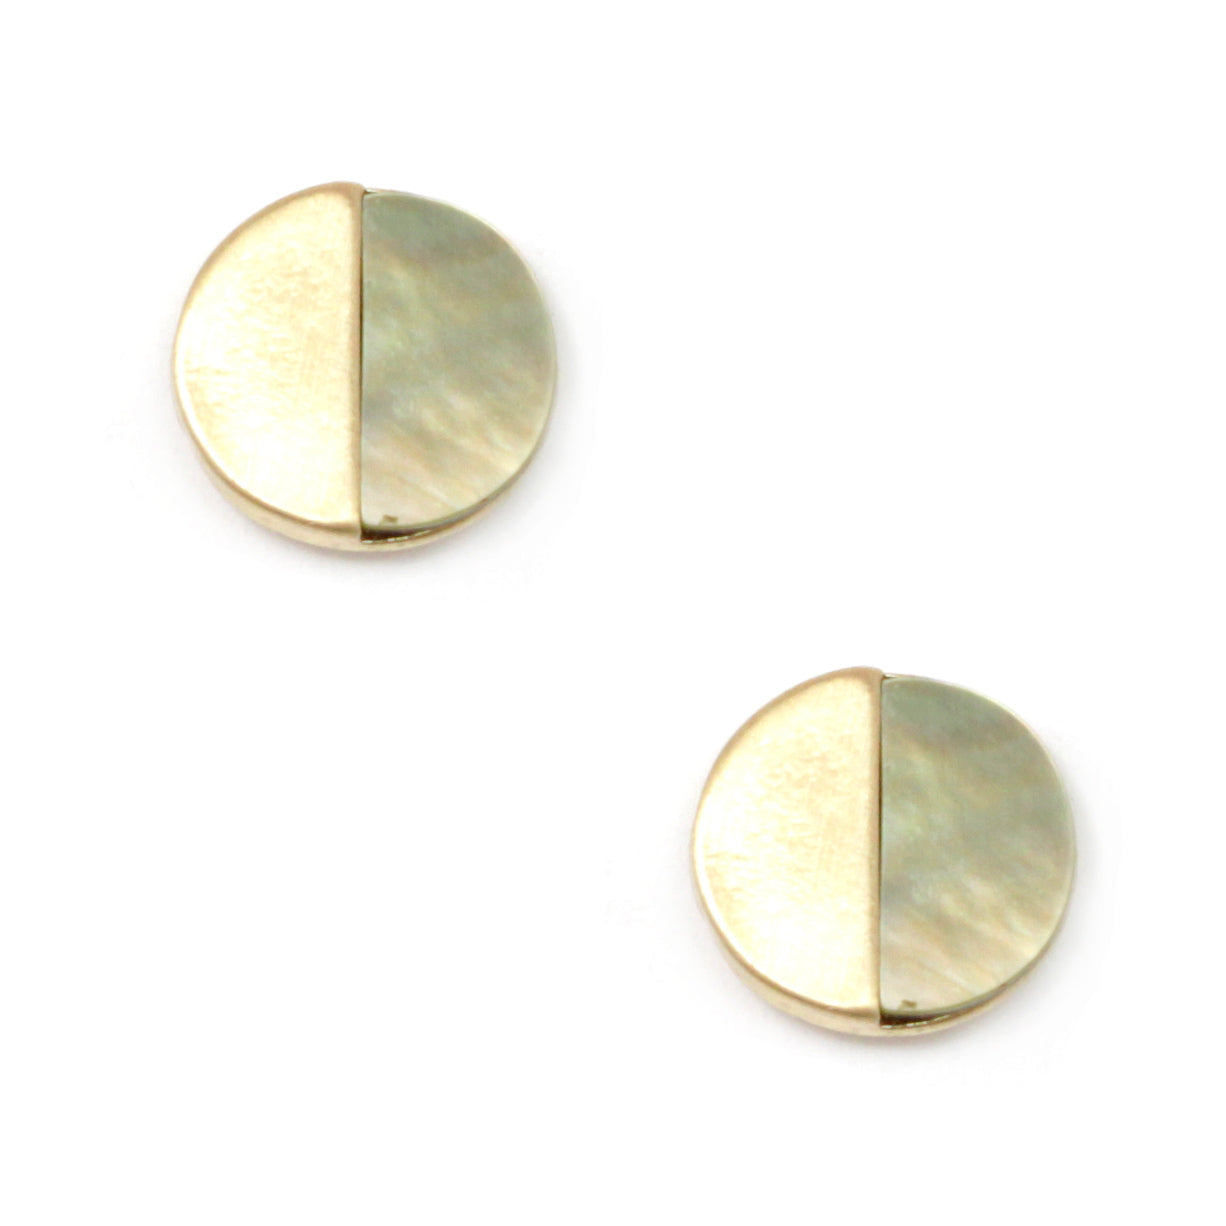 Semi Precious Mini Studs Earrings